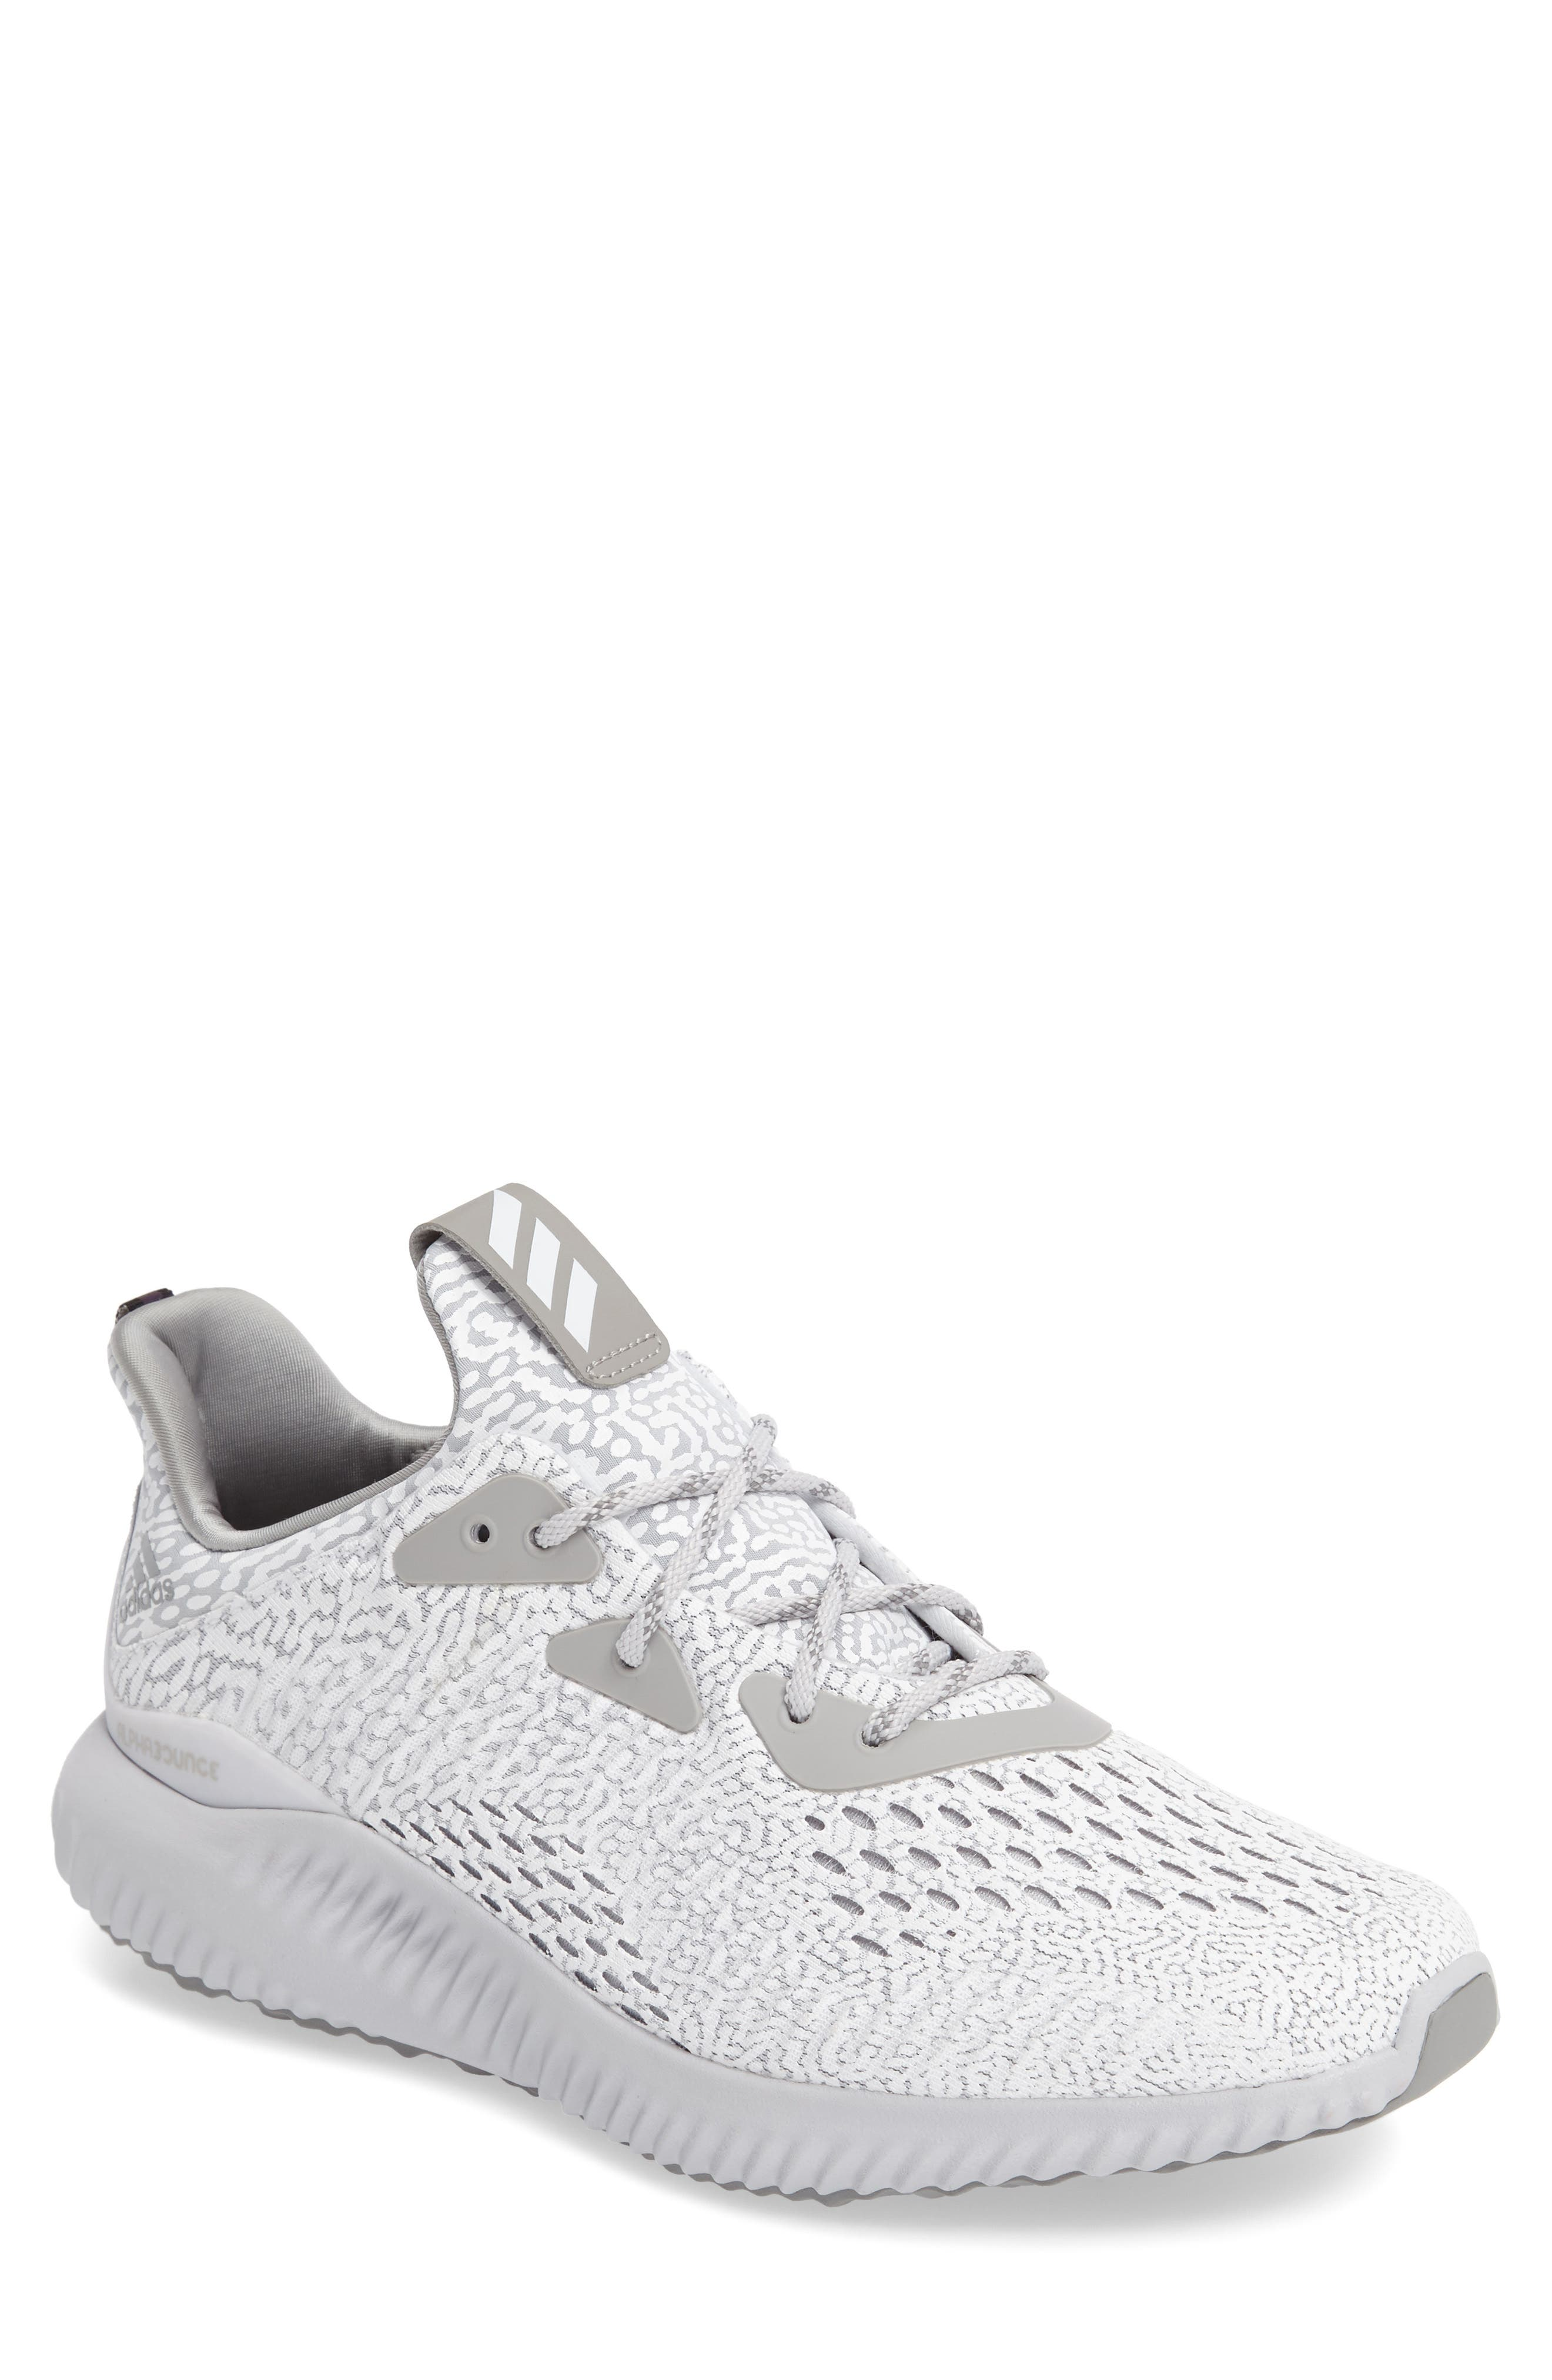 AlphaBounce Aramis Sneaker,                             Main thumbnail 1, color,                             Clear Grey/Core Black